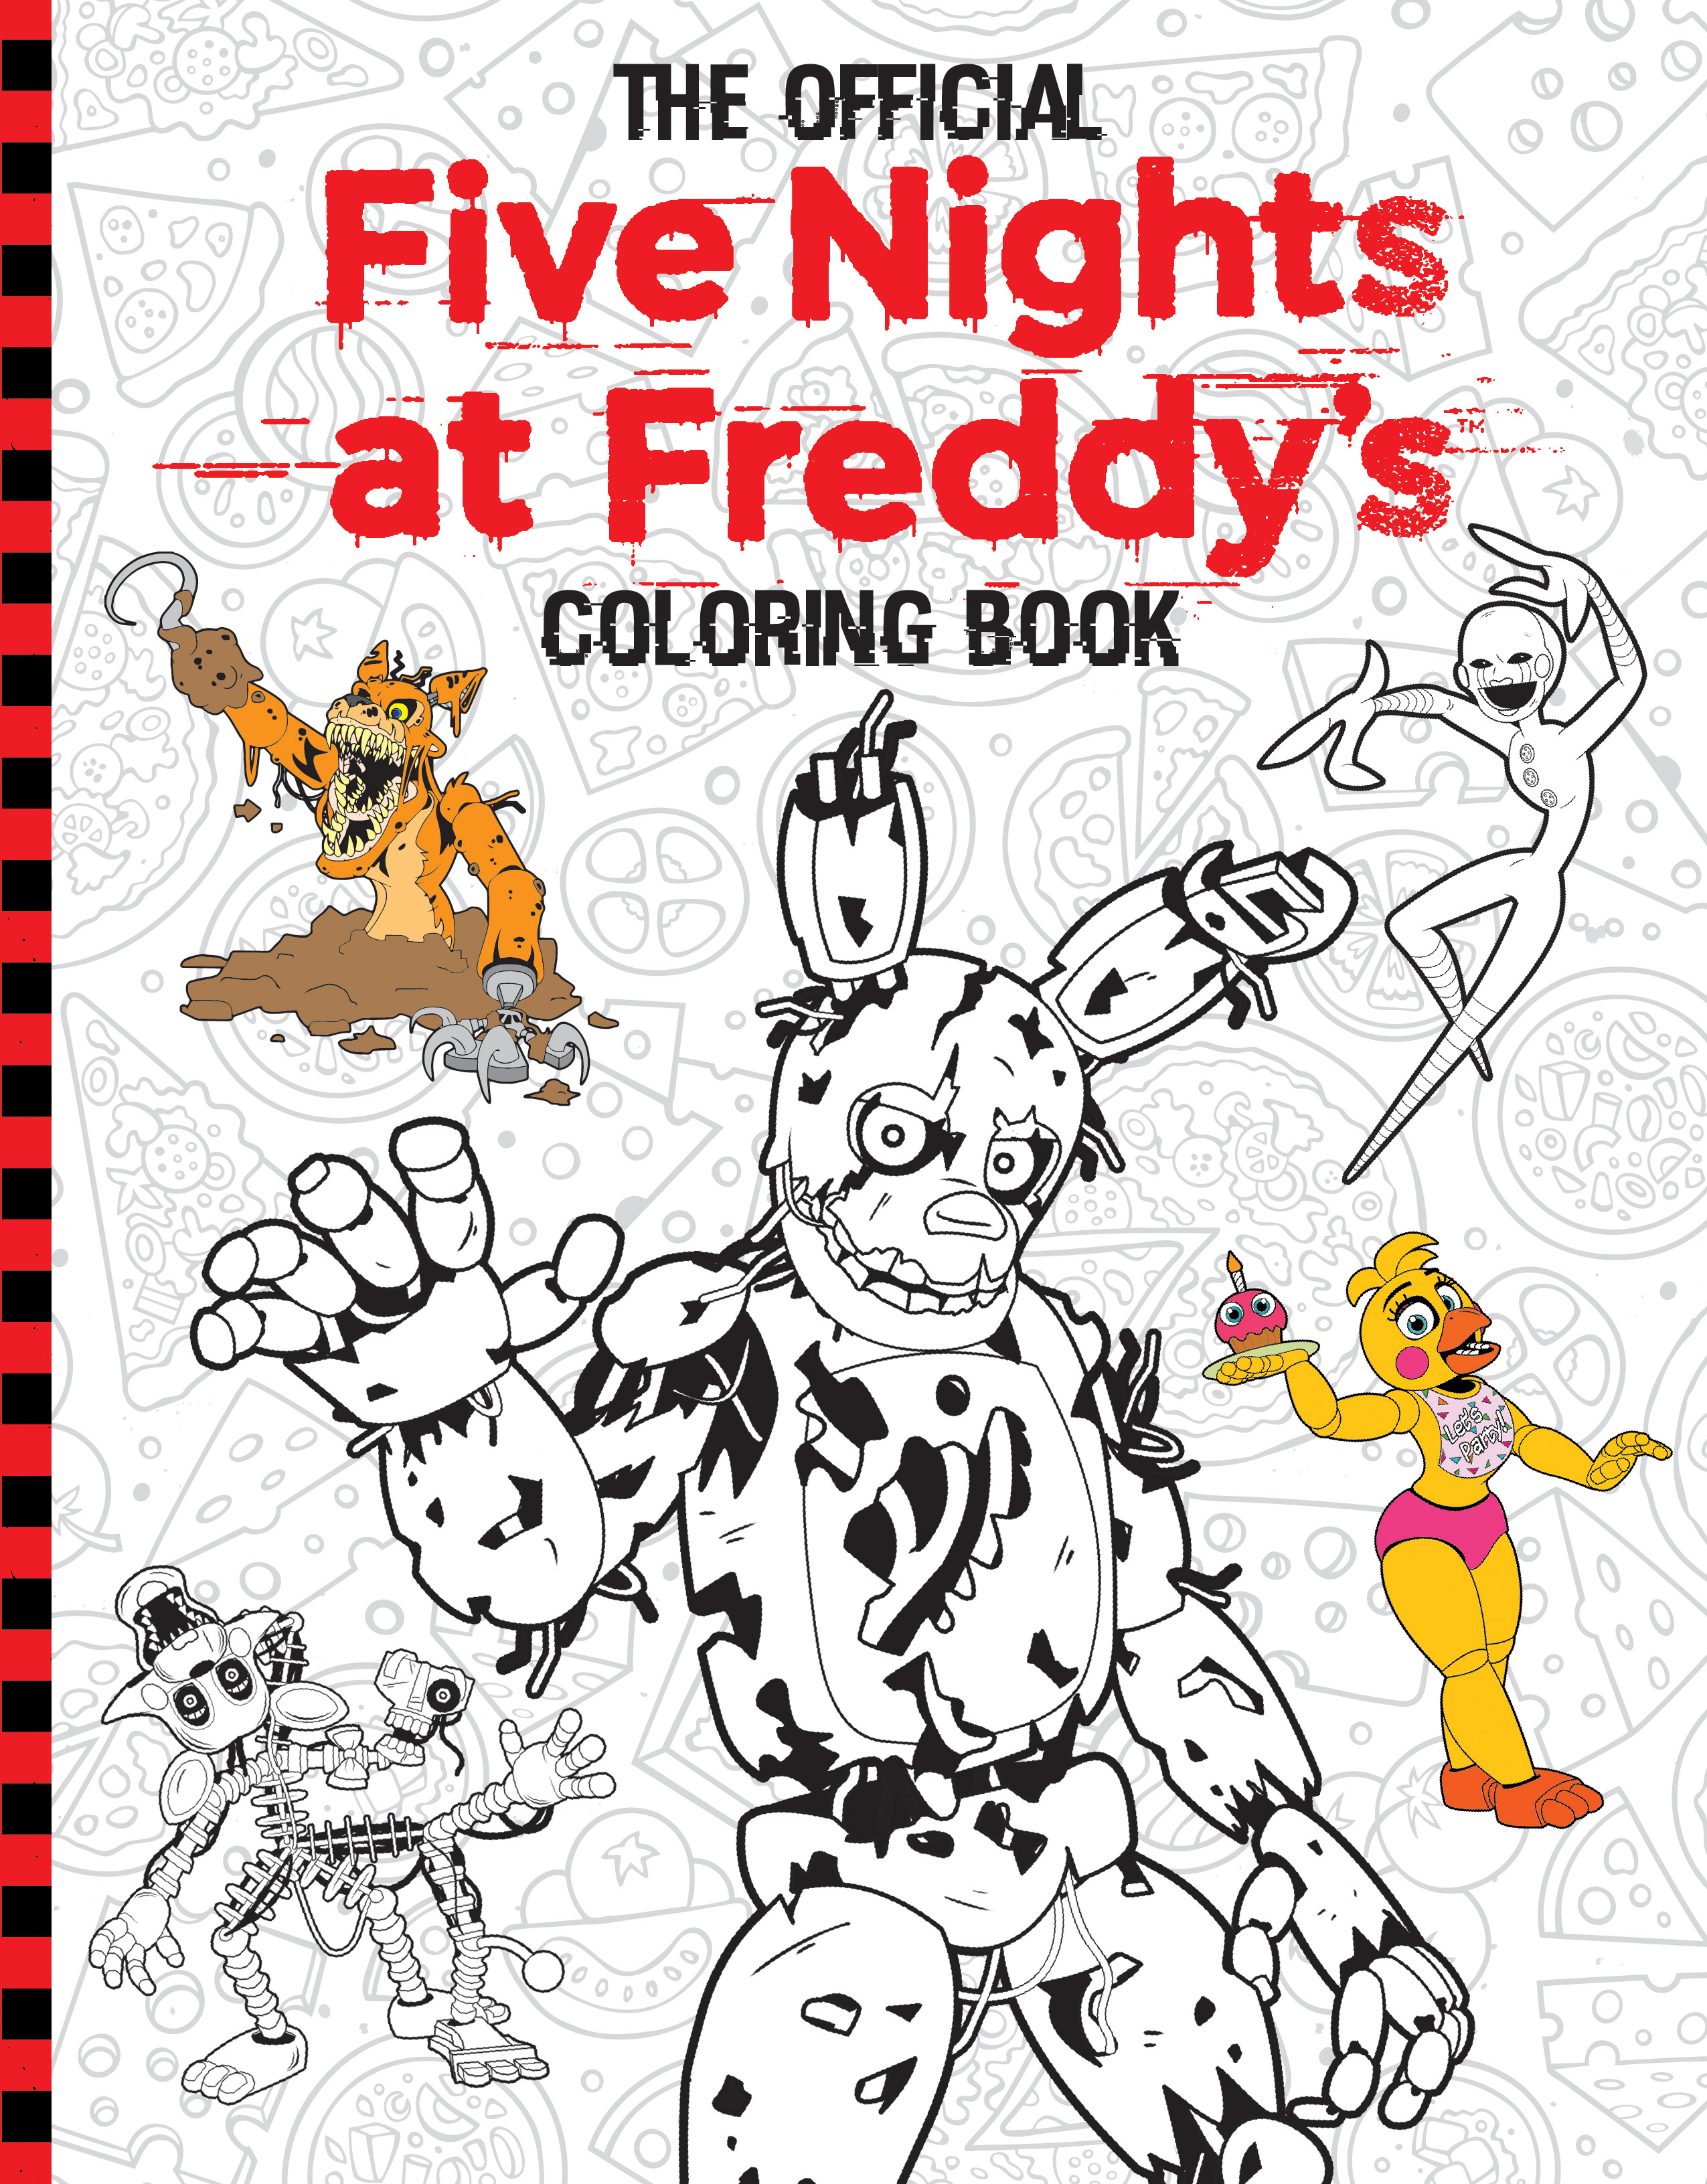 Official Five Nights at Freddy's Coloring Book by Scholastic